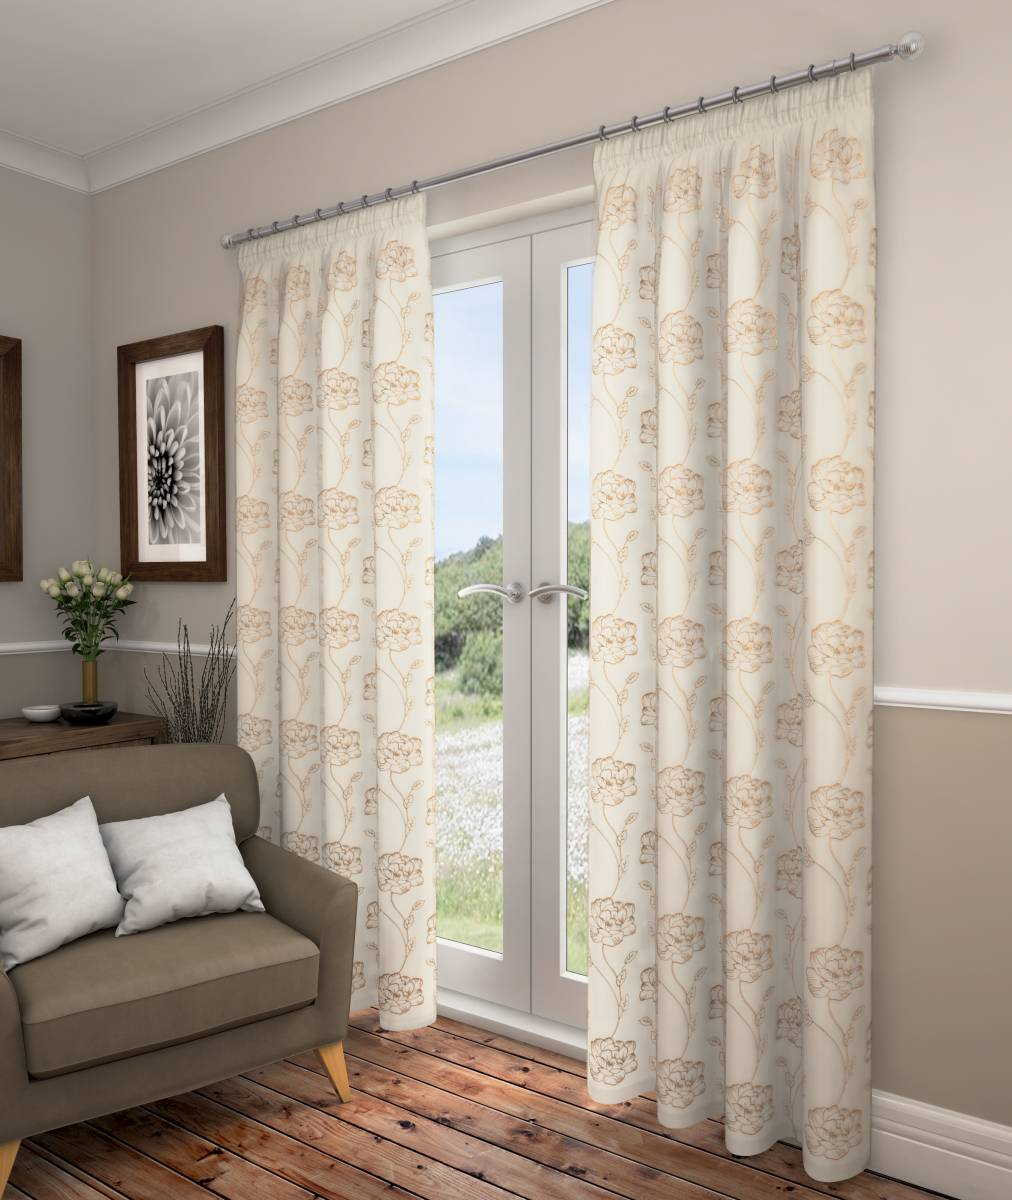 SWINDON CREAM VOILE WITH GOLD DESIGN LINED CURTAINS - Net Curtain 2 ...